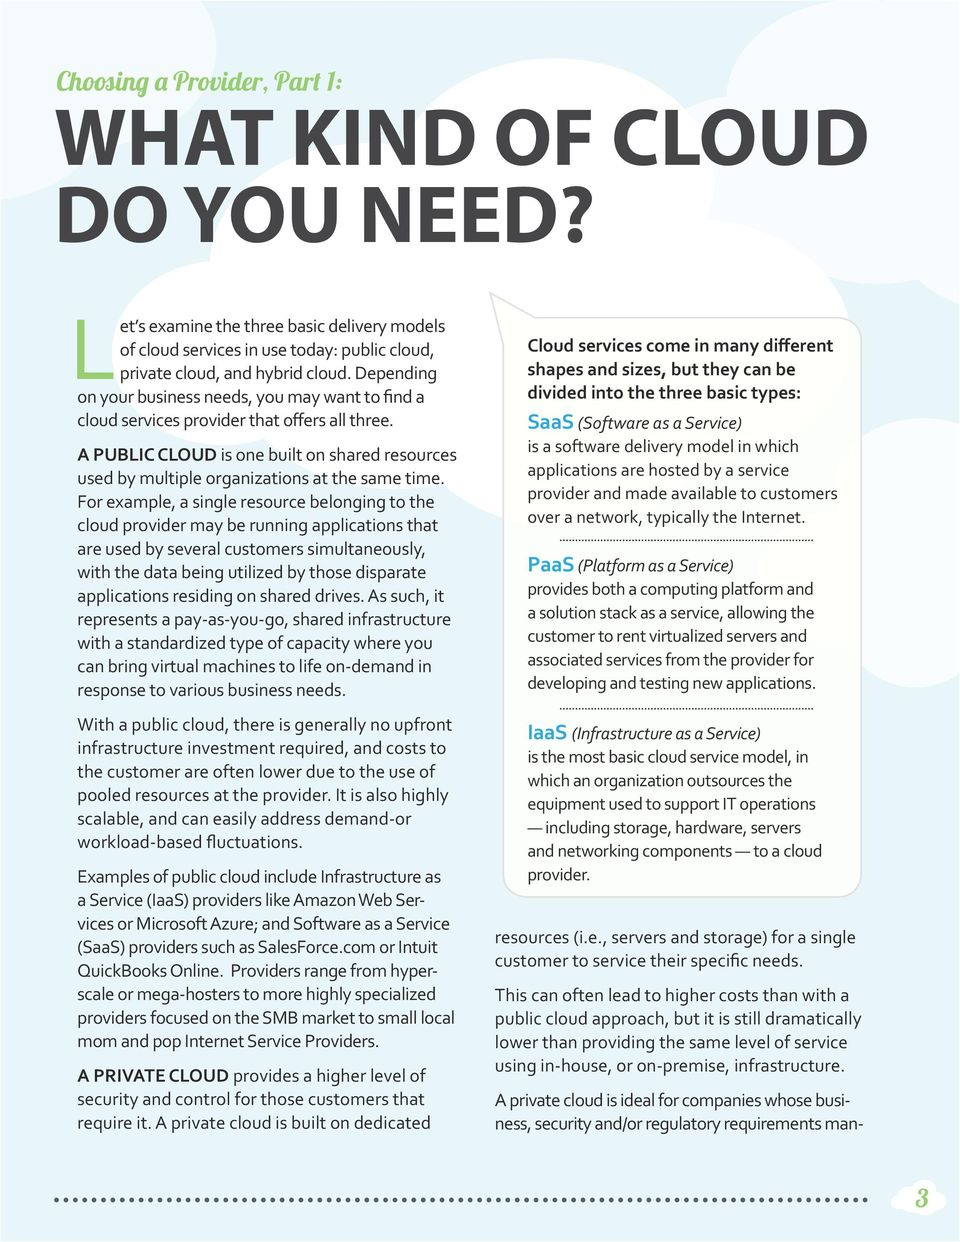 For example, a single resource belonging to the cloud provider may be running applications that are used by several customers simultaneously, with the data being utilized by those disparate